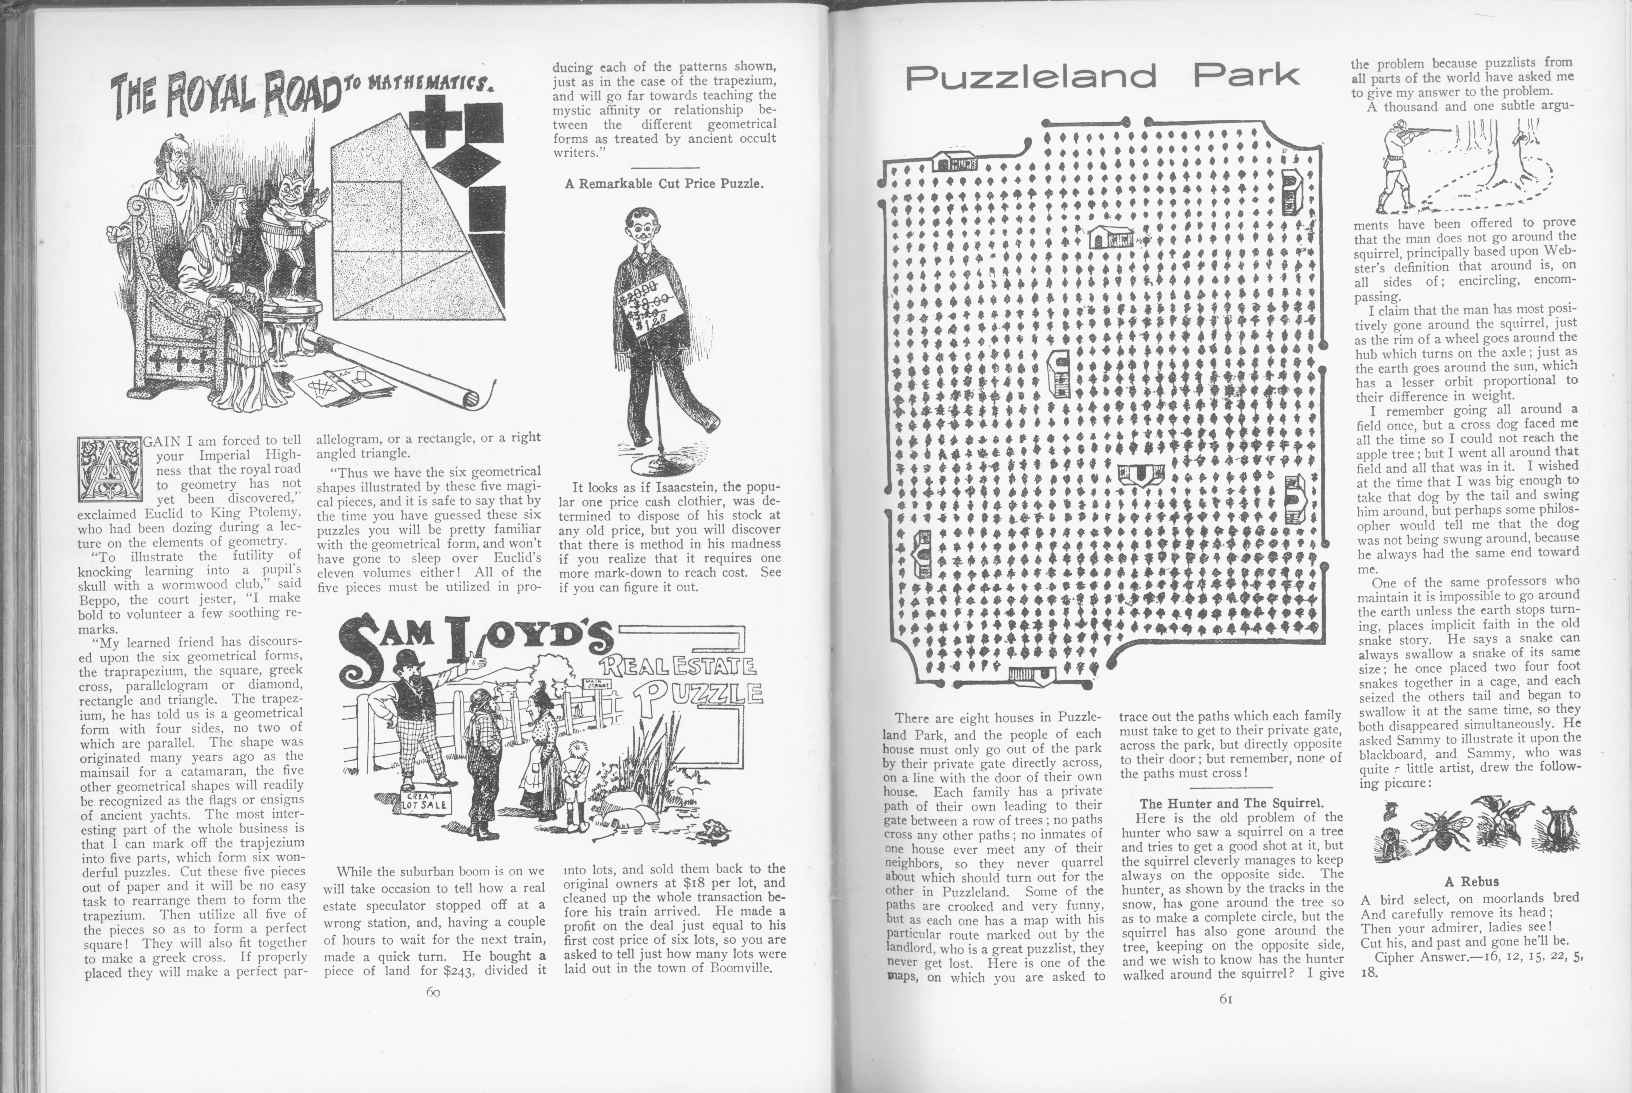 Sam Loyd - Cyclopedia of Puzzles - page 60-61